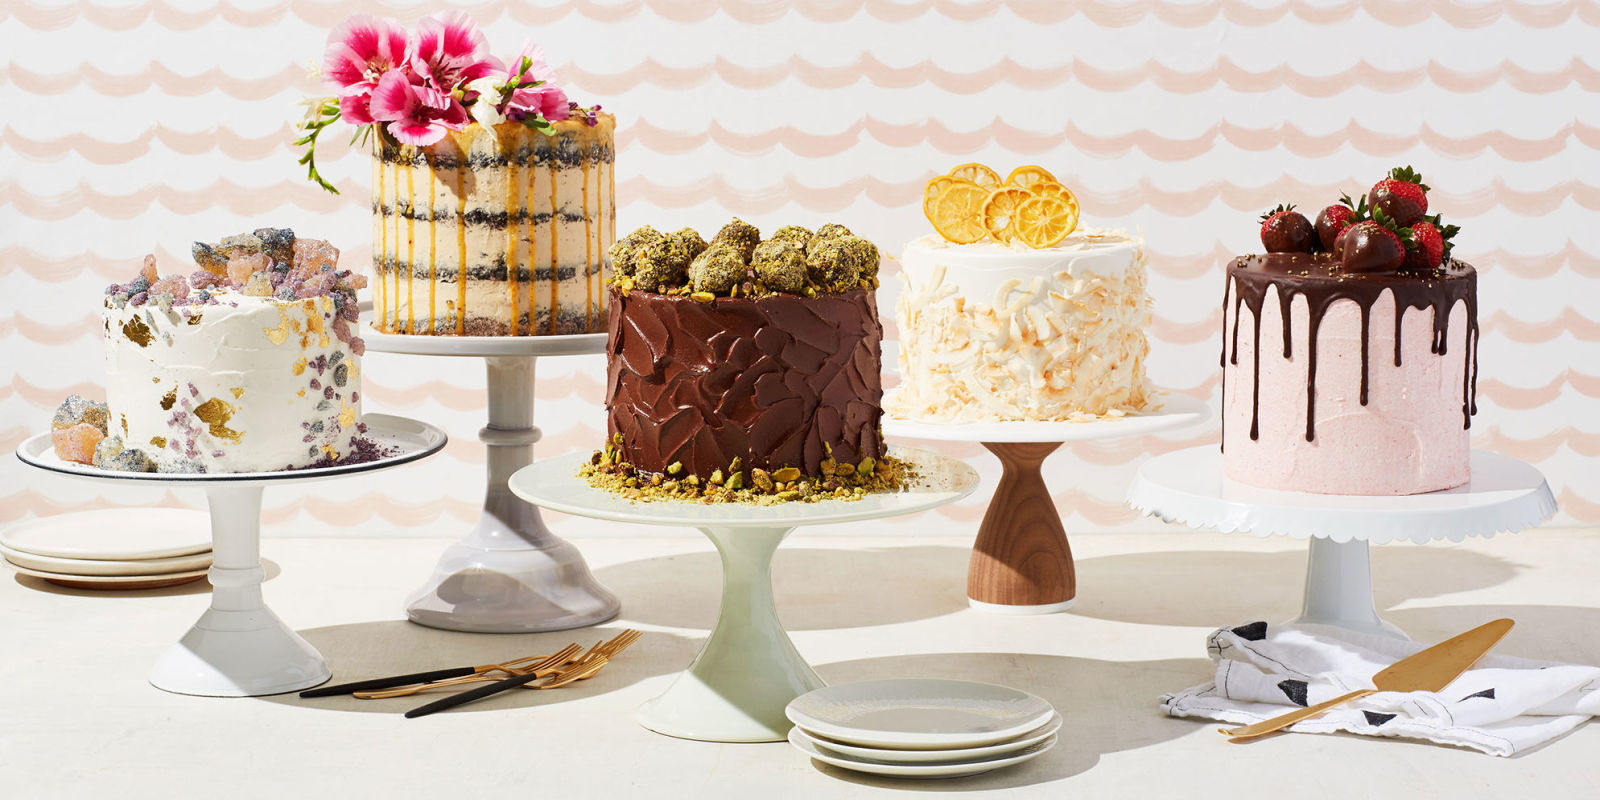 Eat With Your Eyes: 22 Insanely Gorgeous Cakes